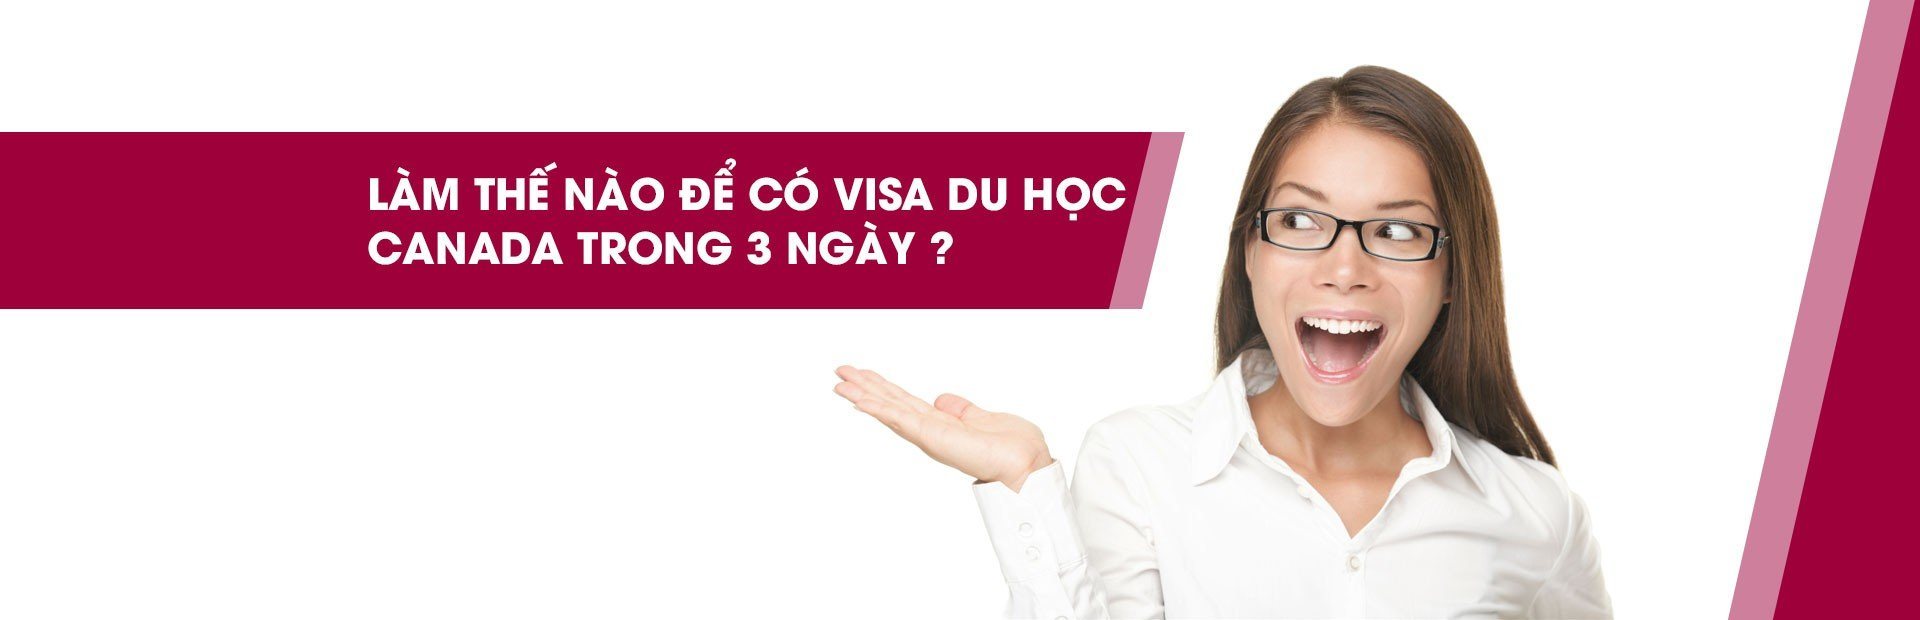 DH canada 3 ngay